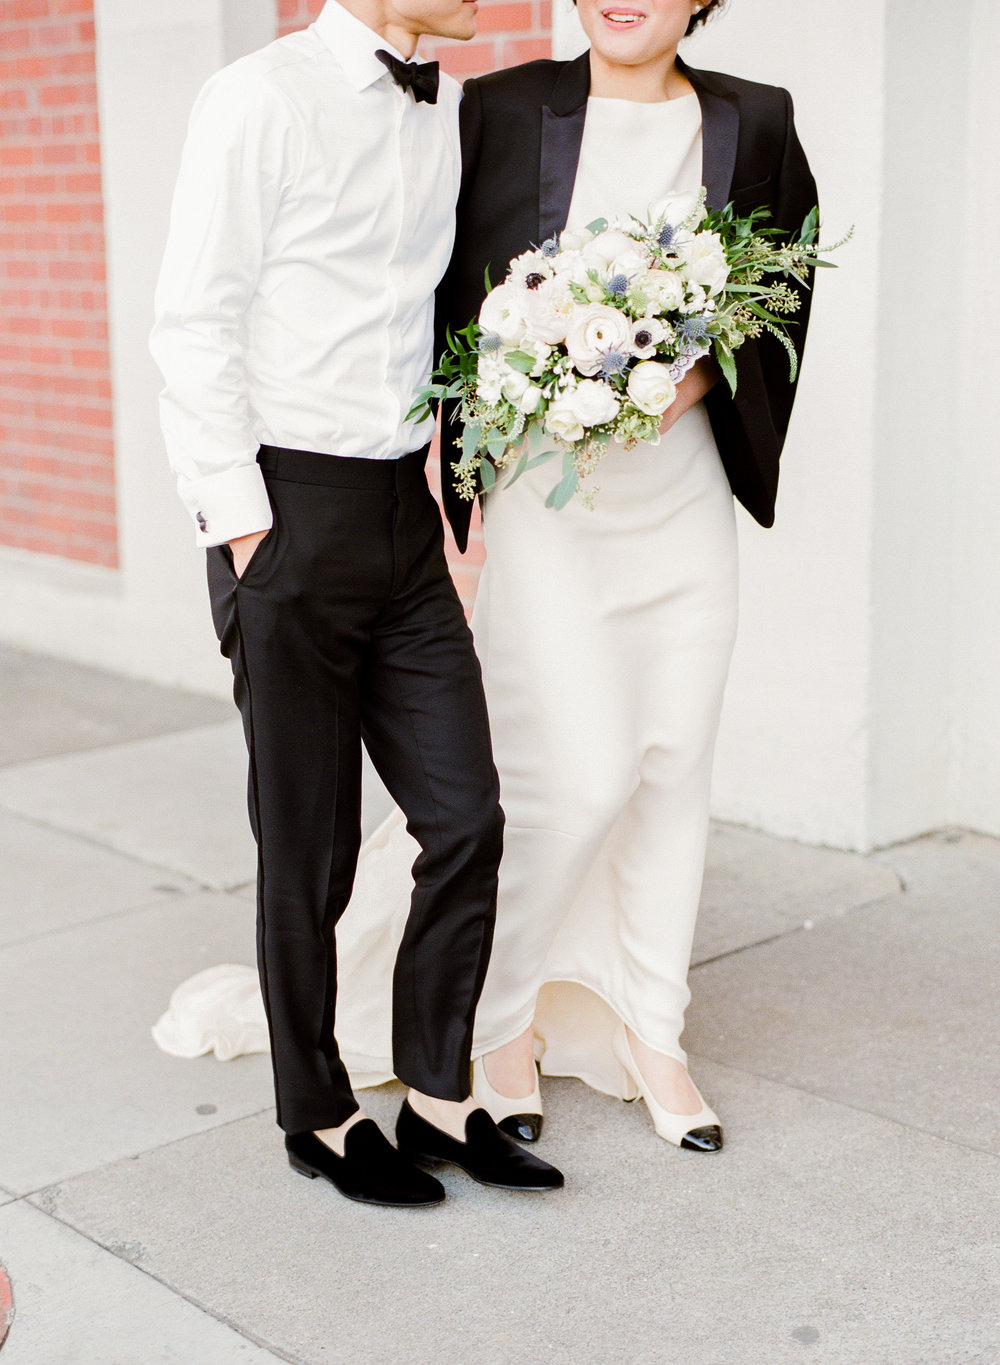 San Francisco Destination Wedding Photographer - Wine Works City Chic Romantic Wedding